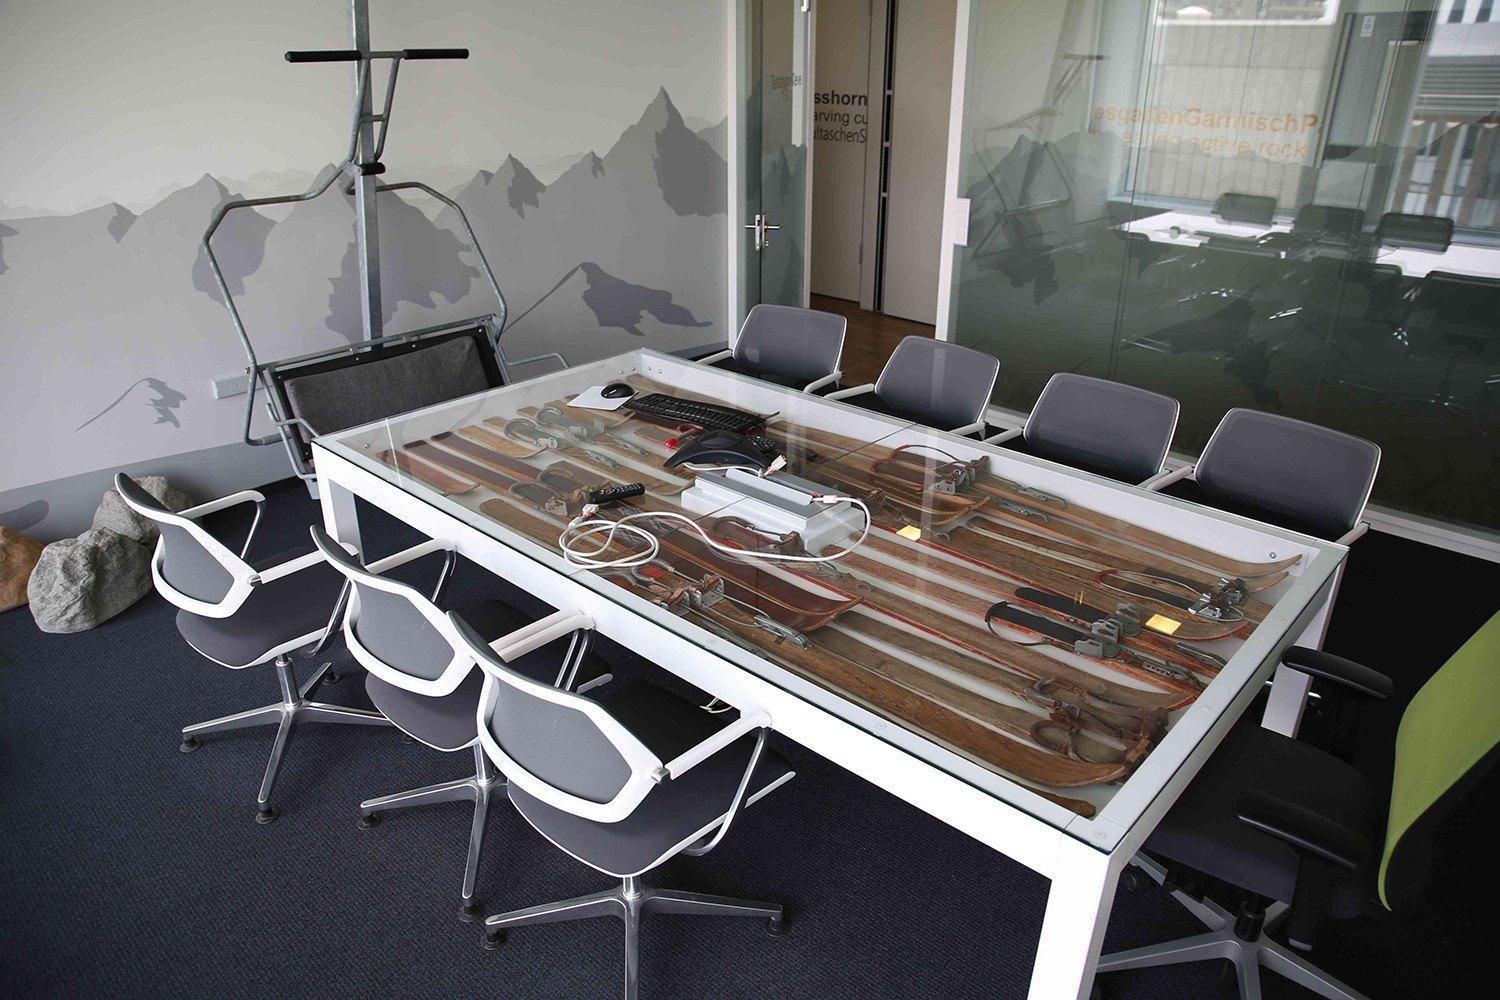 A Look Inside Trivagos Dsseldorf Office Officelovin